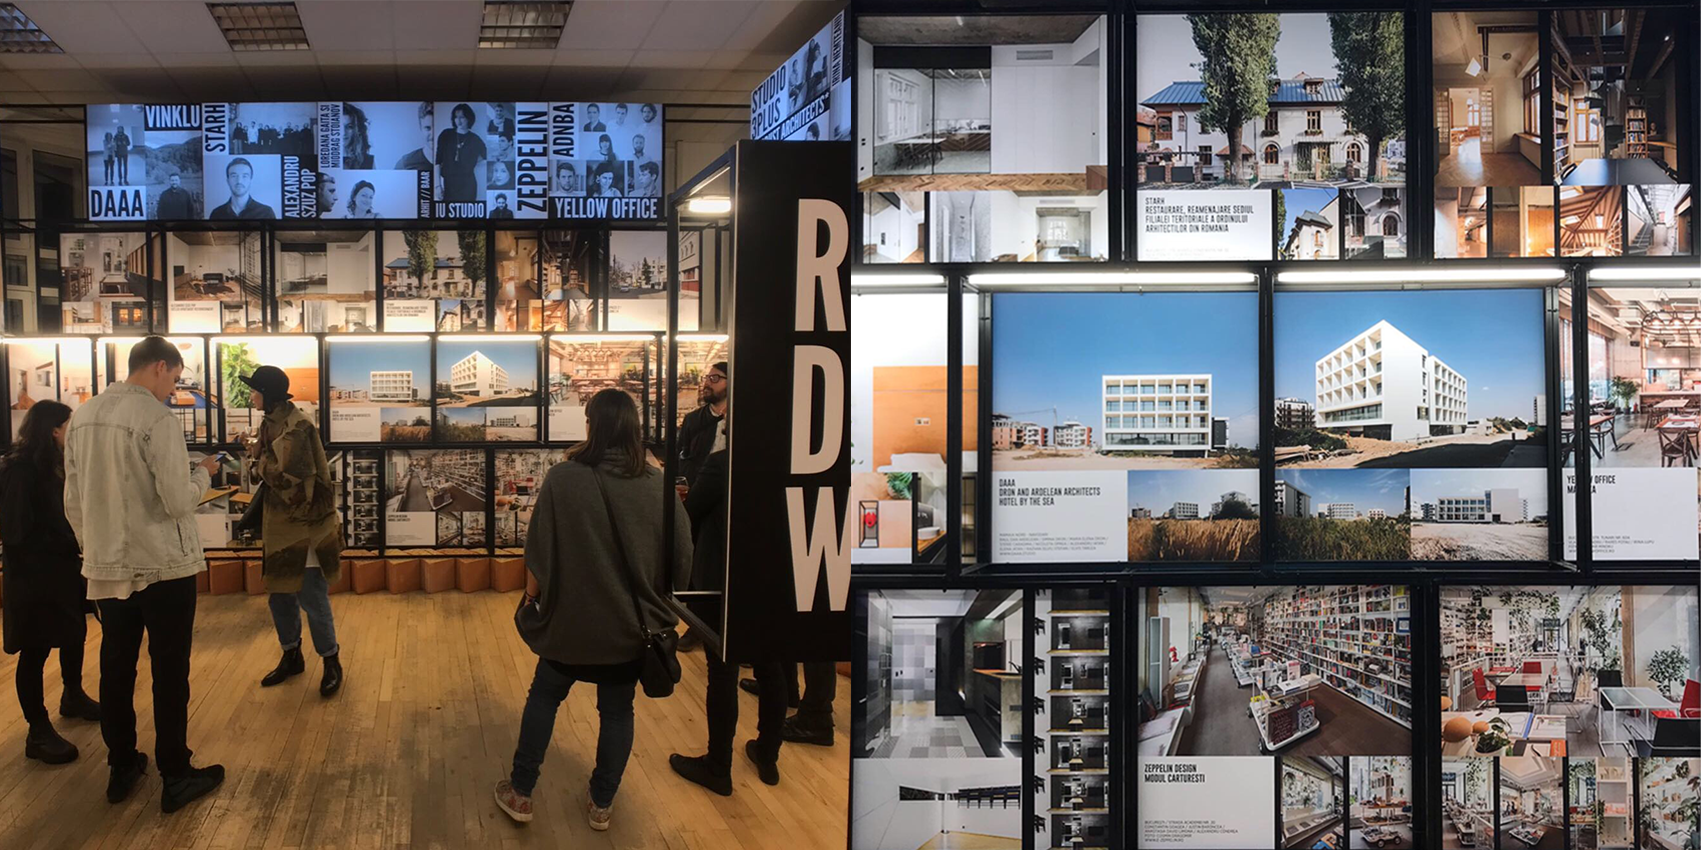 HOTEL BY THE SEA presentation at Romanian Design Week 2019 - DAAA presented the Hotel by the sea project in the main exhibition of RDW 2019, May 17-26, at BCR Palace, Piața Universității / University Square, Bucharest, Romania.